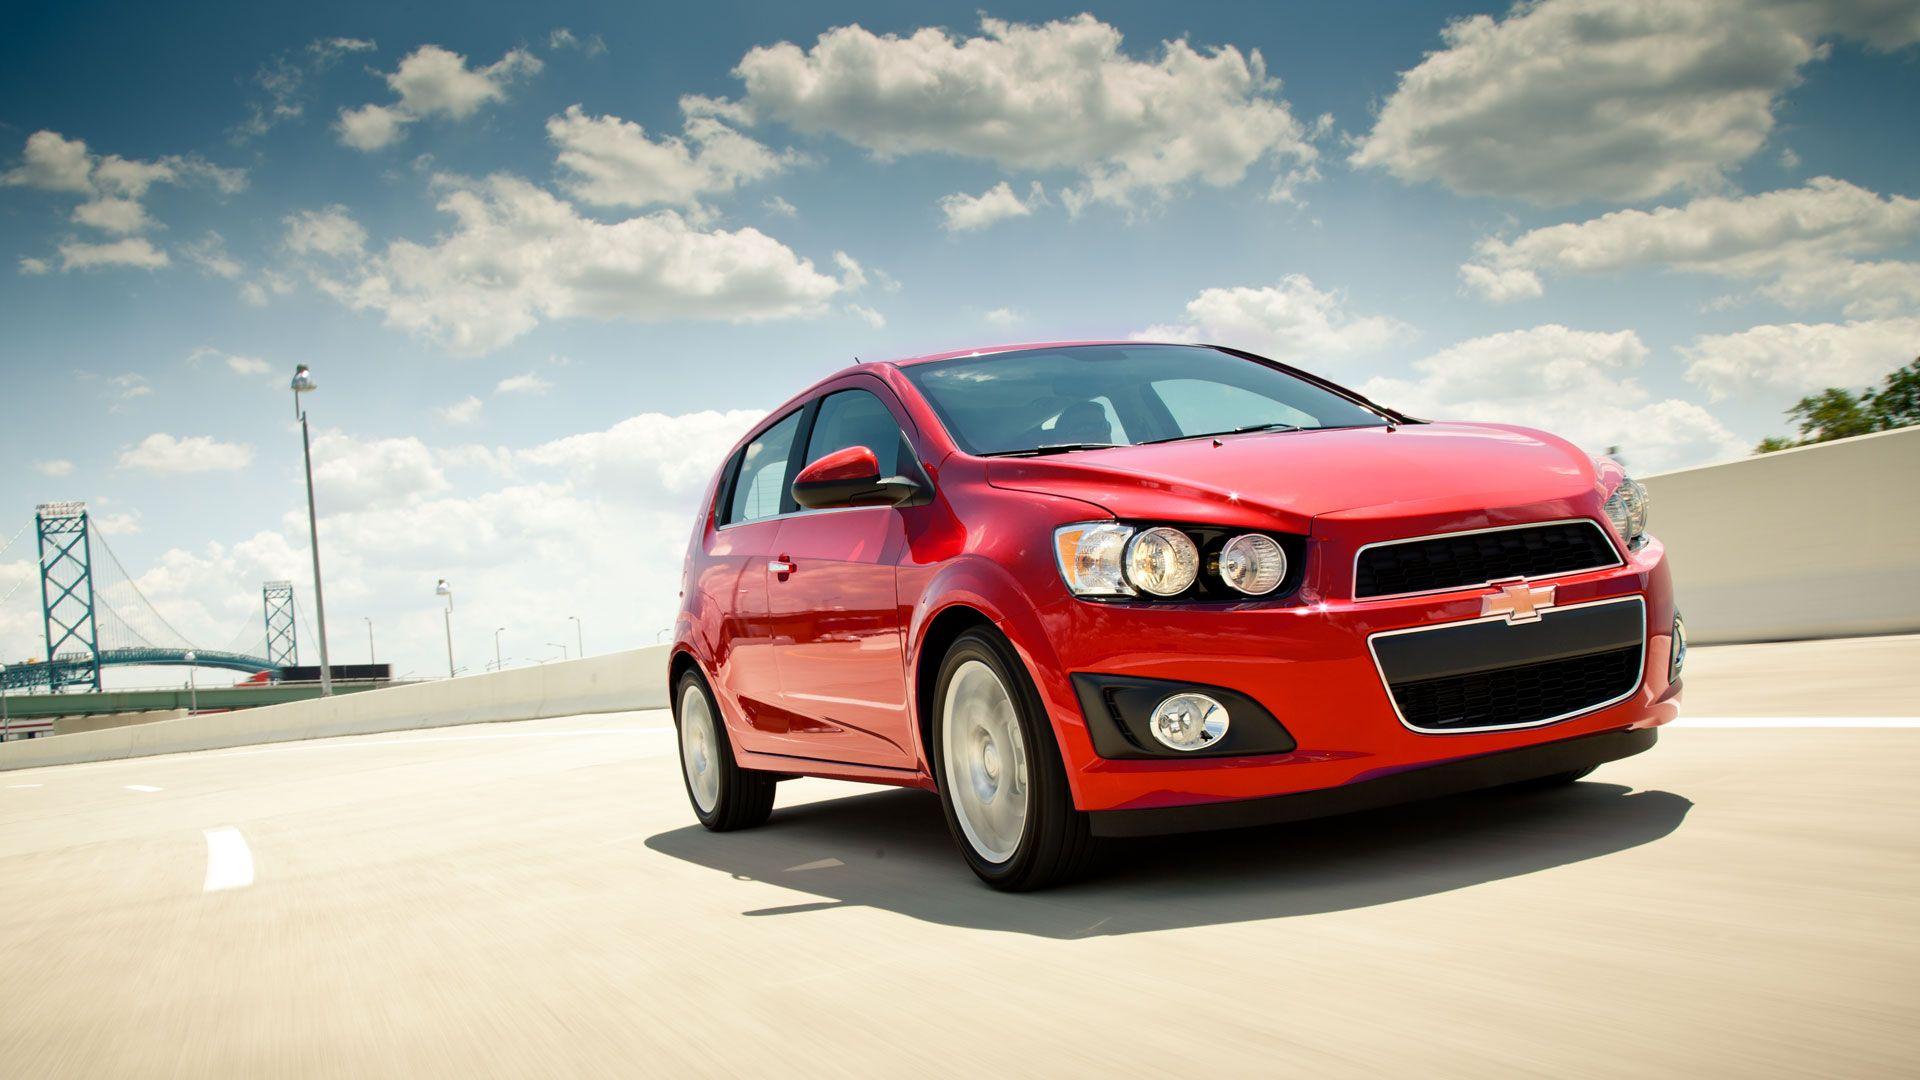 2016 Sonic Exterior Photos Chevrolet Sonic Chevy Sonic Chevy Dealerships